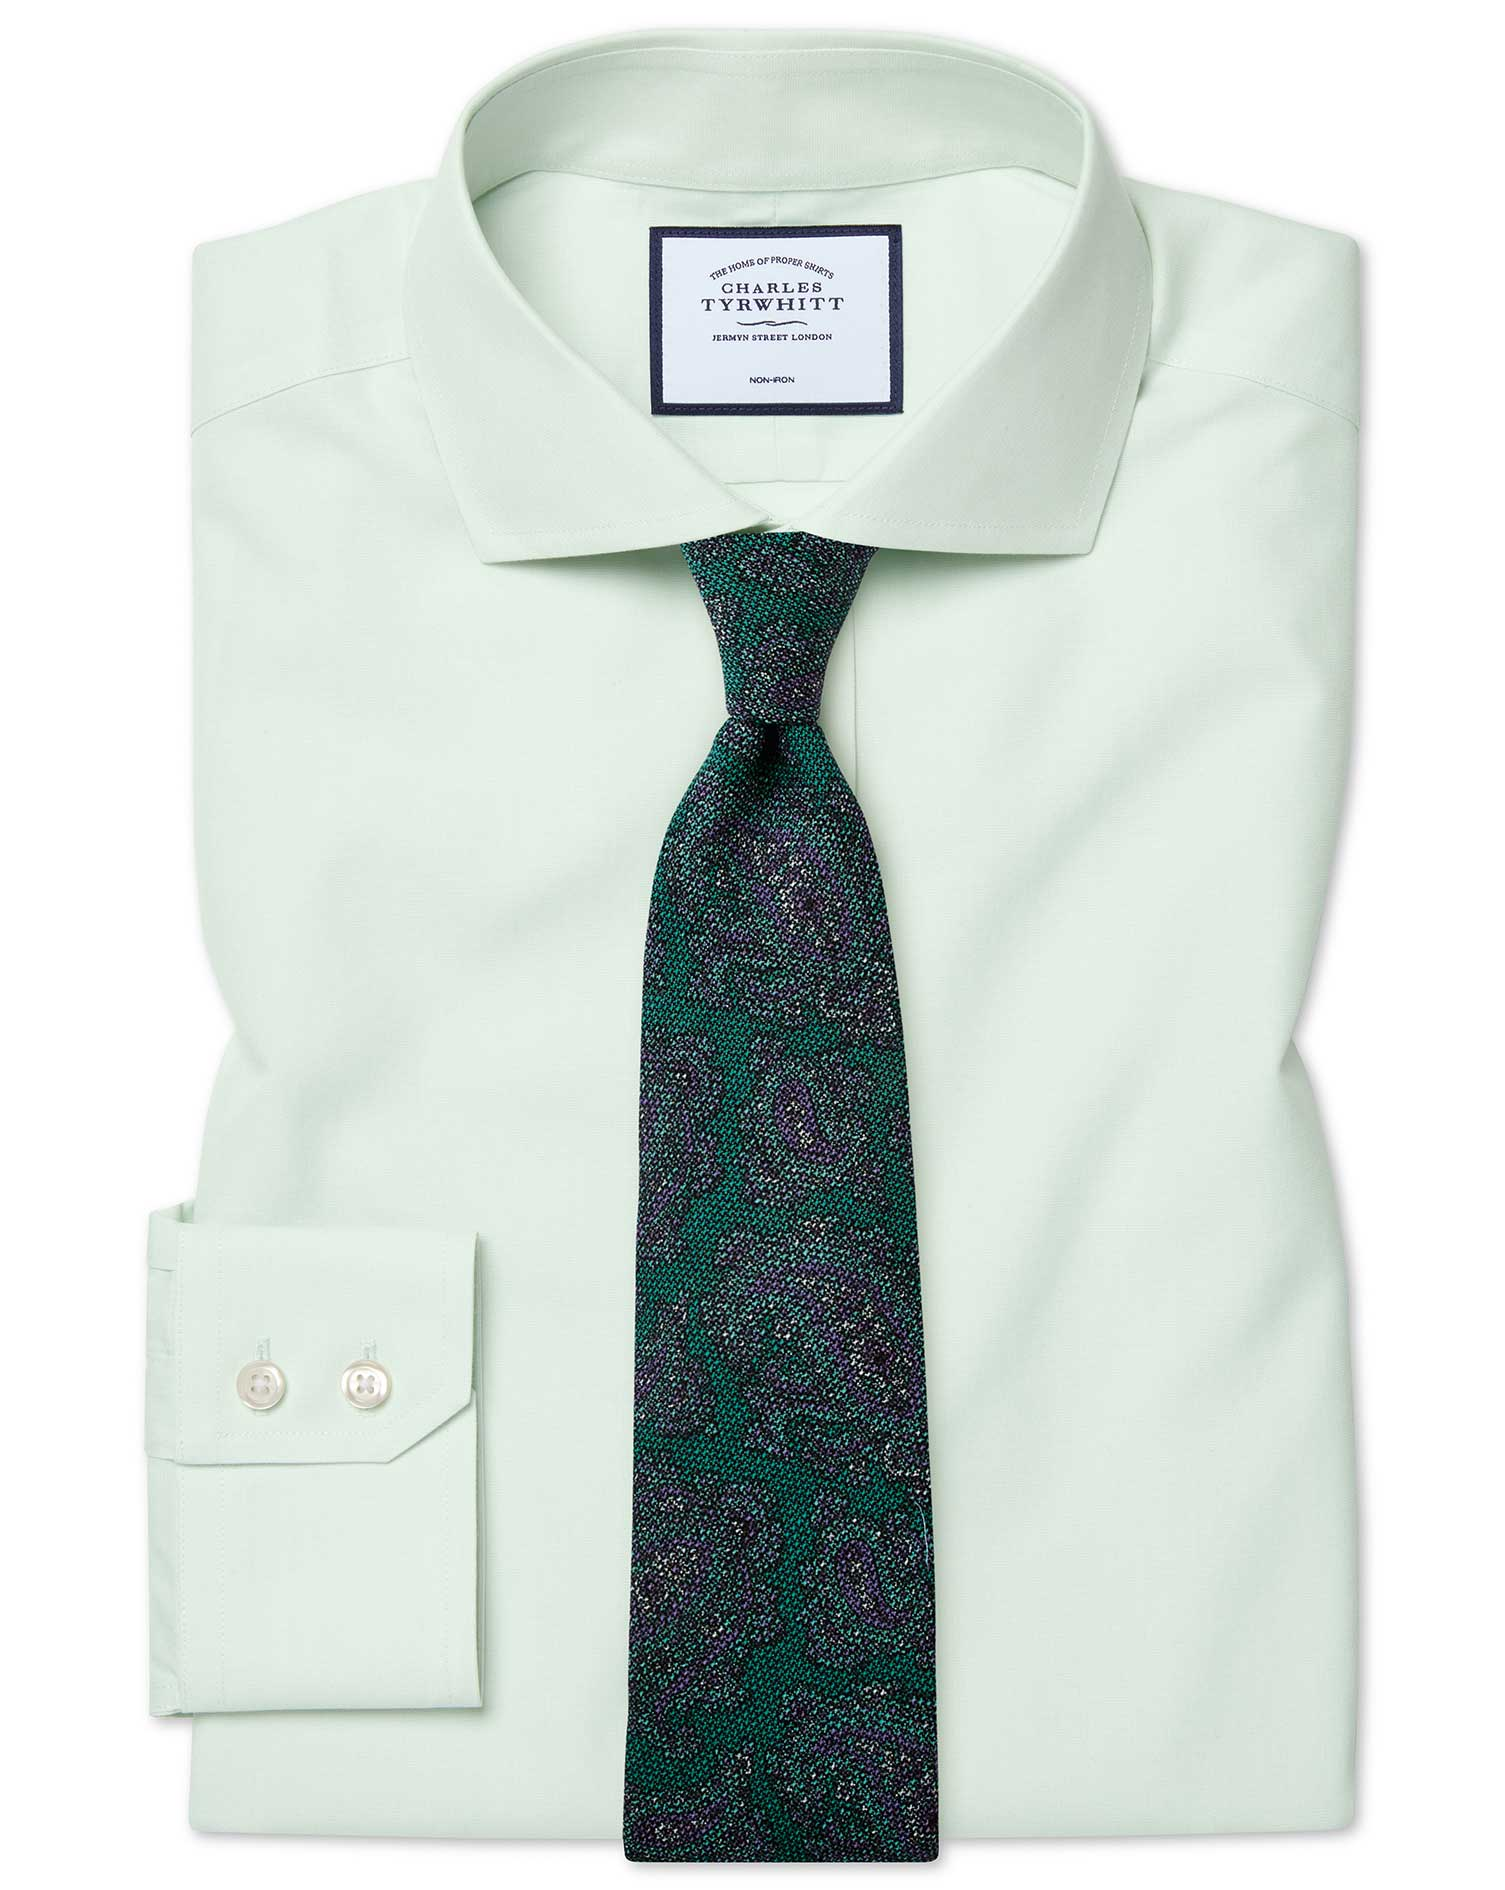 Slim Fit Cutaway Non-Iron Poplin Green Cotton Formal Shirt Double Cuff Size 15.5/32 by Charles Tyrwh